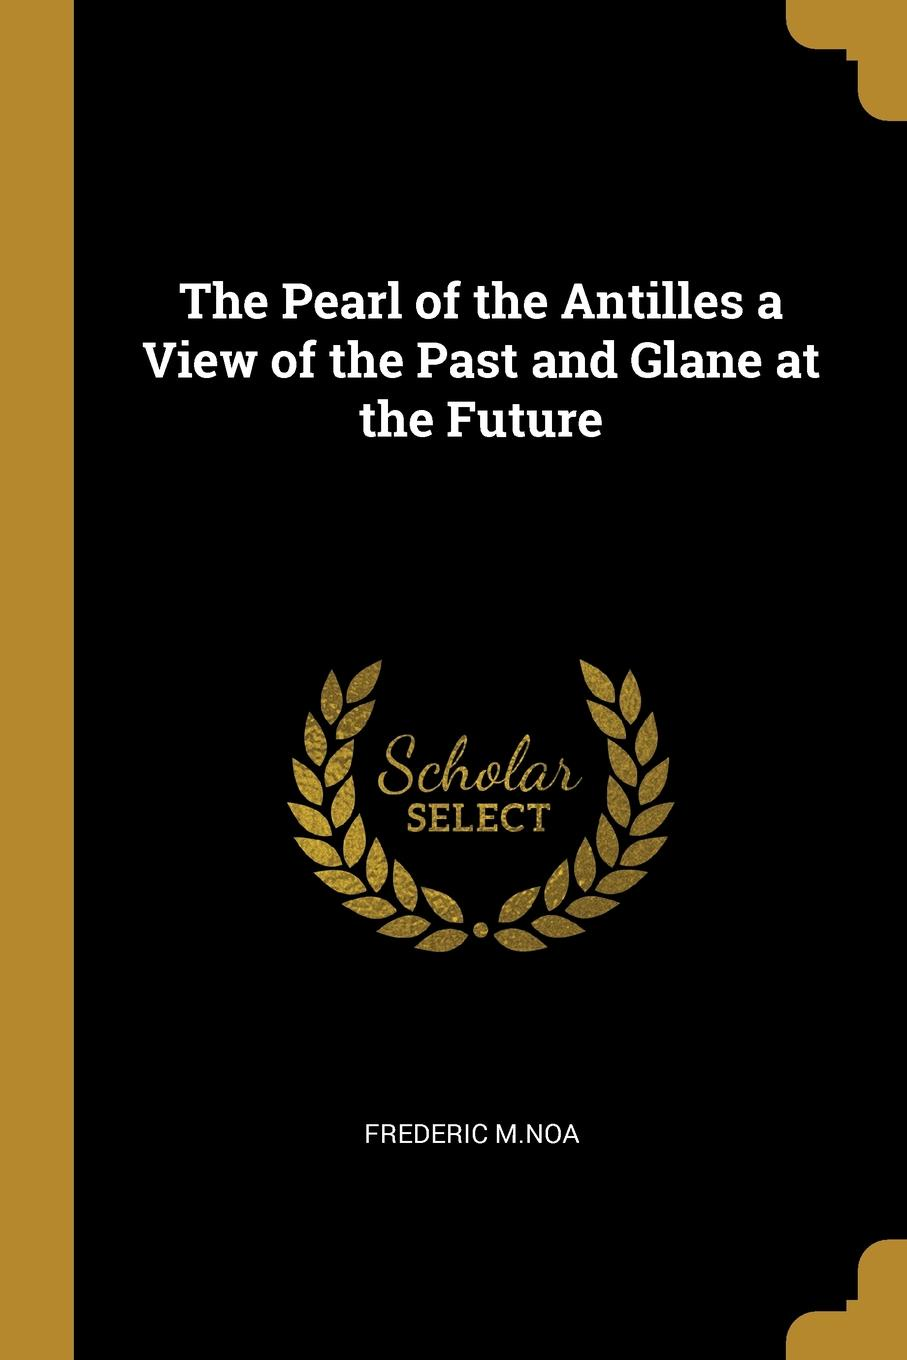 Frederic M.Noa The Pearl of the Antilles a View of the Past and Glane at the Future